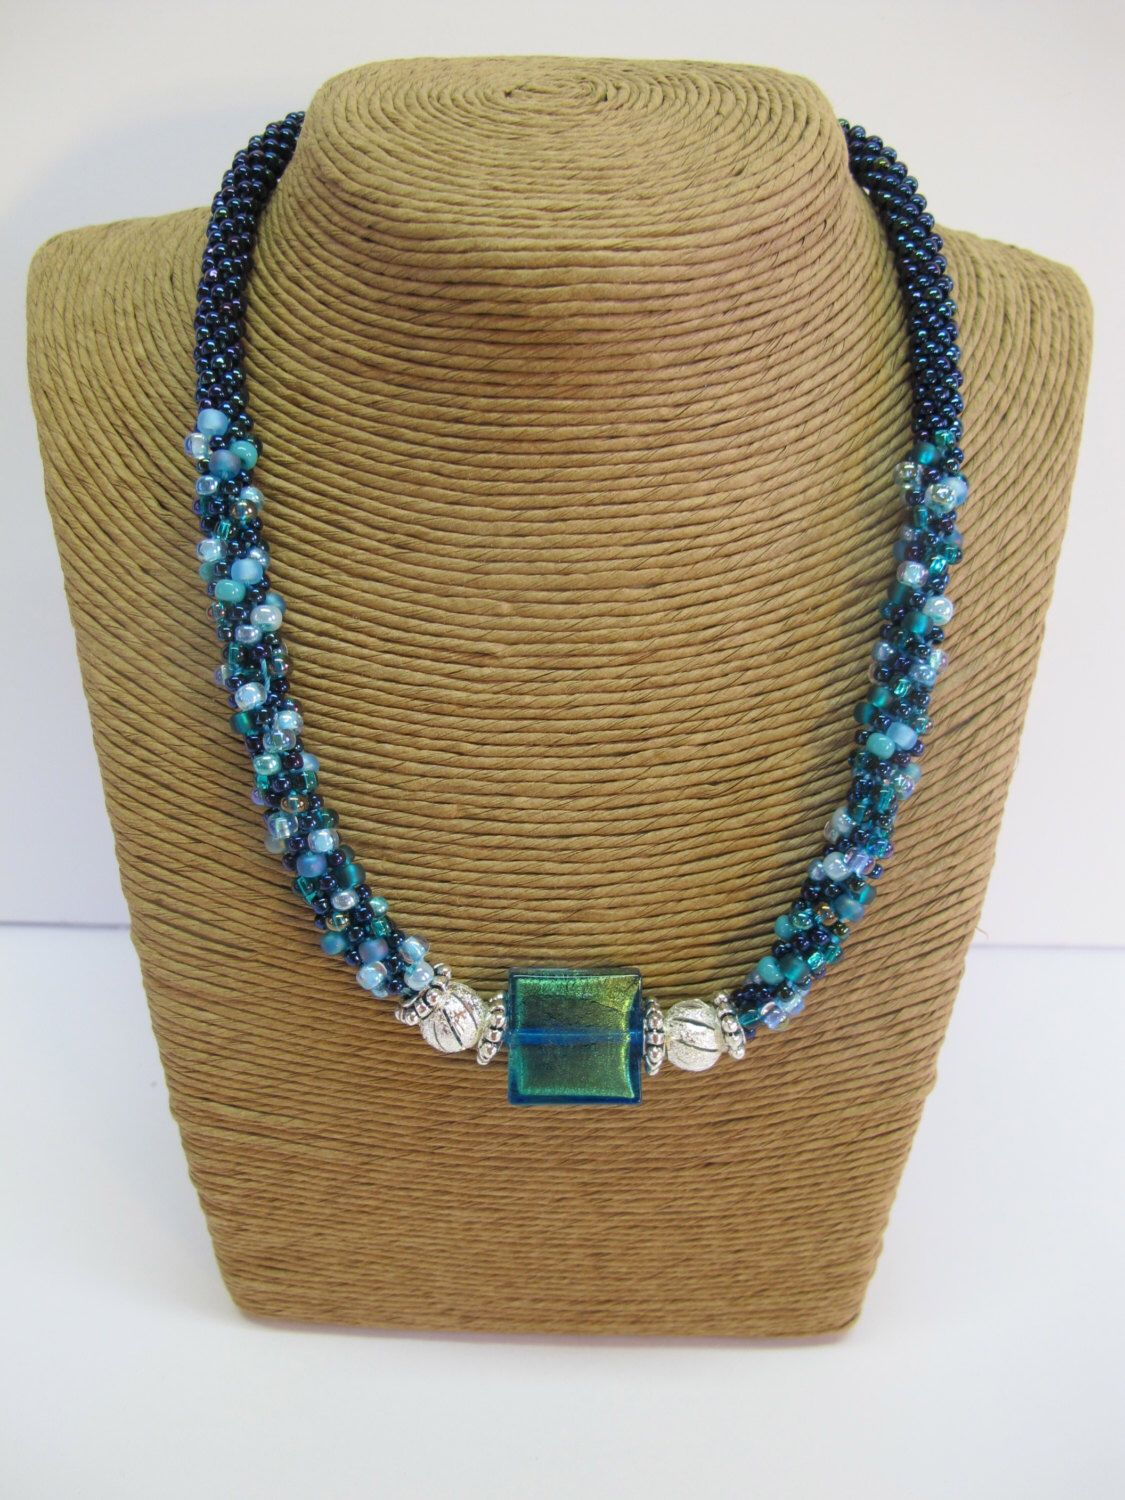 "19"" Kumihimo necklace with irredesent green Italian millifiori glass focal bead. by RosesKumihimo on Etsy https://www.etsy.com/listing/212279015/19-kumihimo-necklace-with-irredesent"